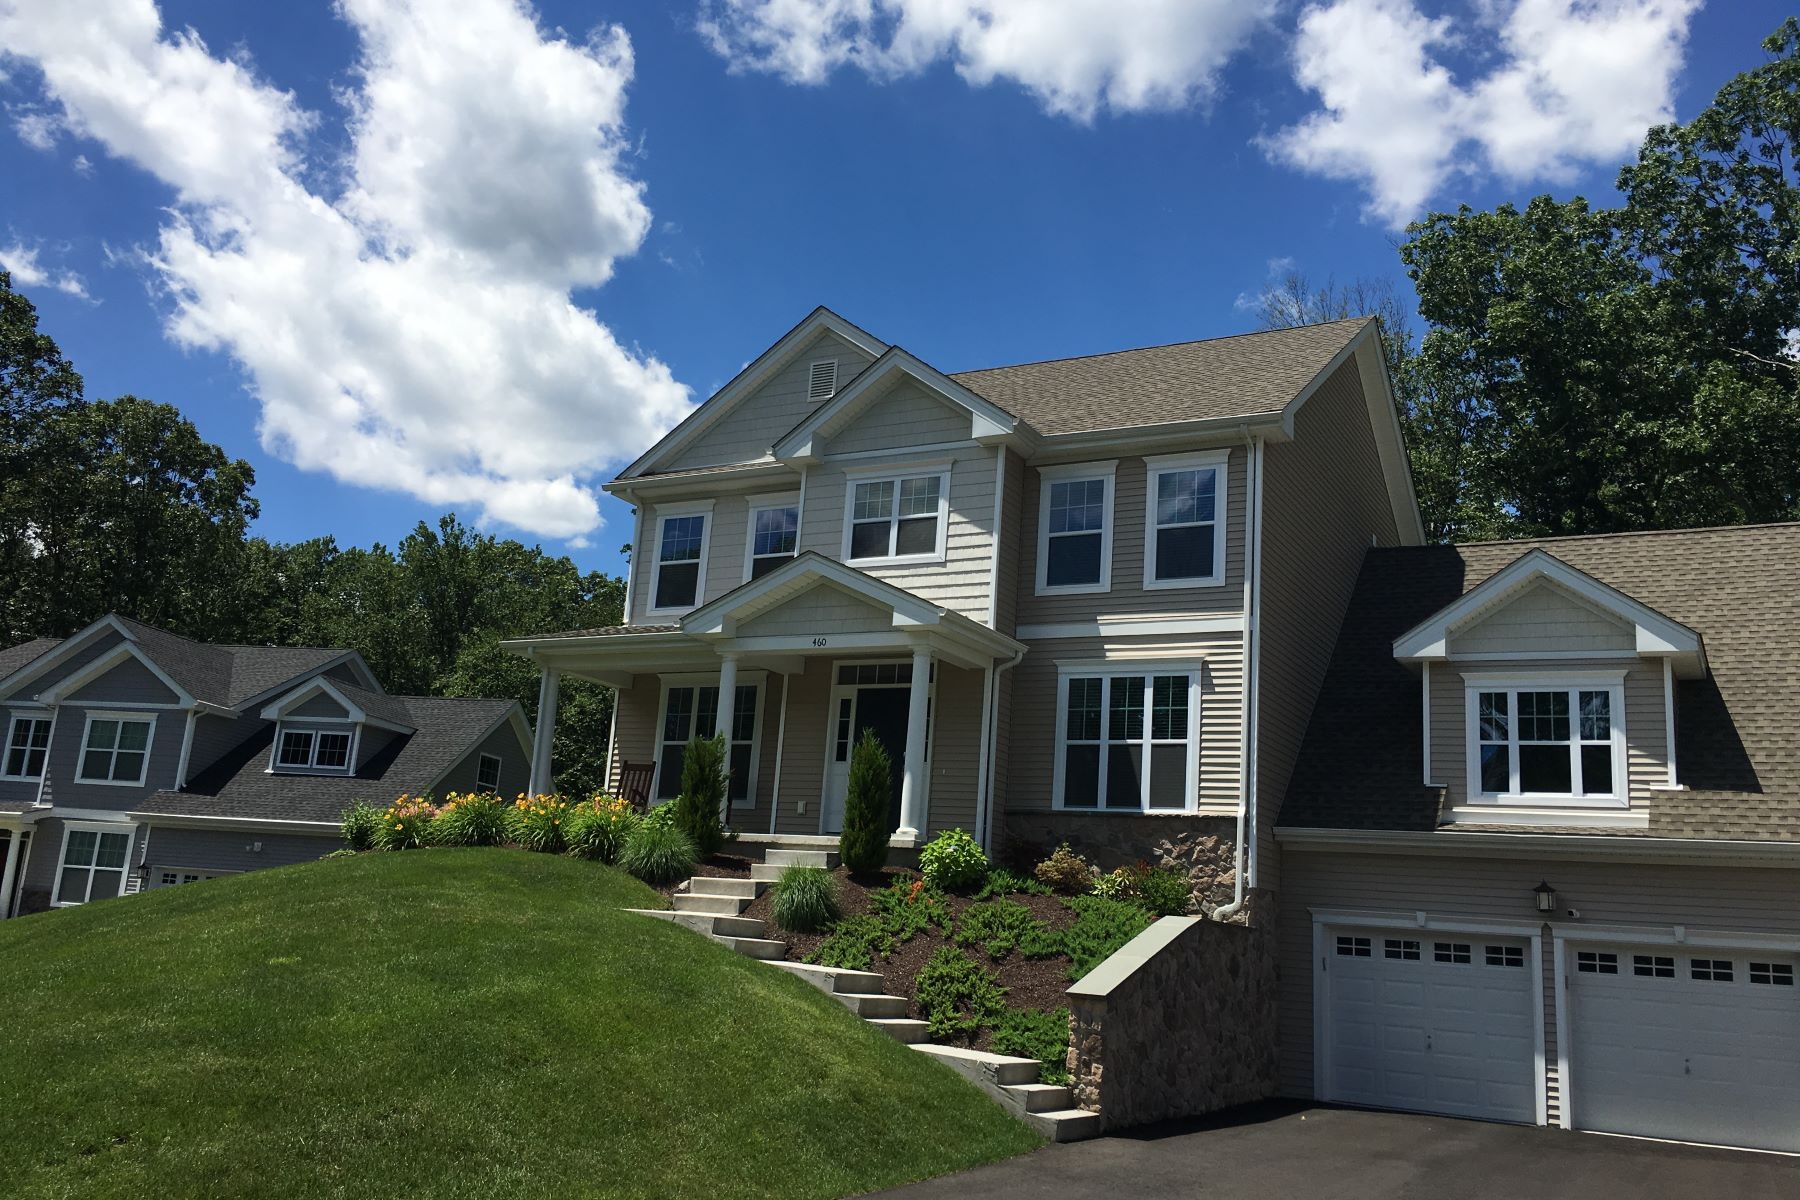 Single Family Home for Rent at Four Bedroom Colonial 460 Nutmeg Lane 460 Stratford, Connecticut 06614 United States